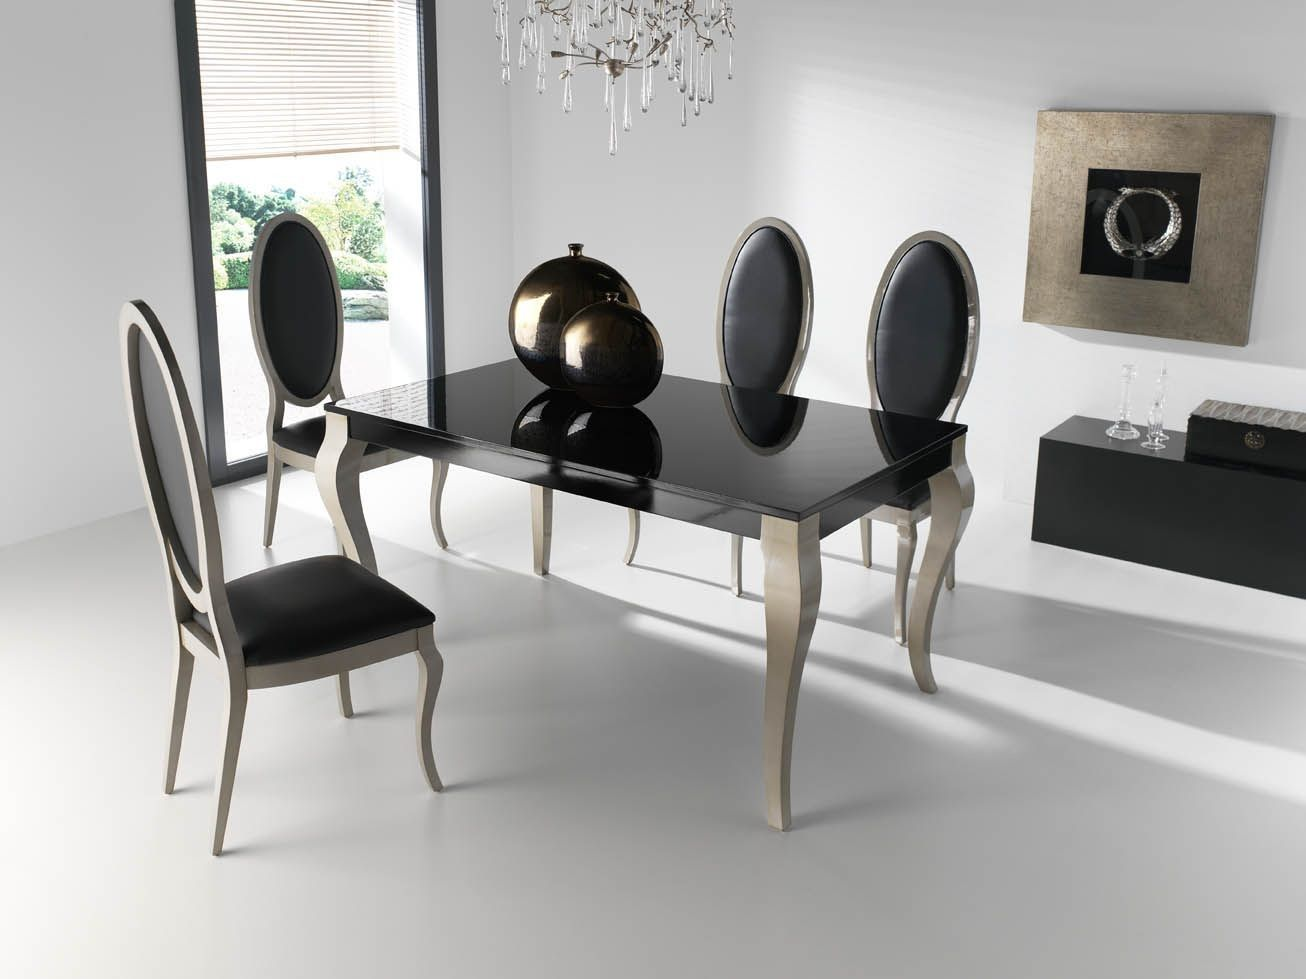 Mesa comedor moderna laca negra Chipendale | Leather Items ...